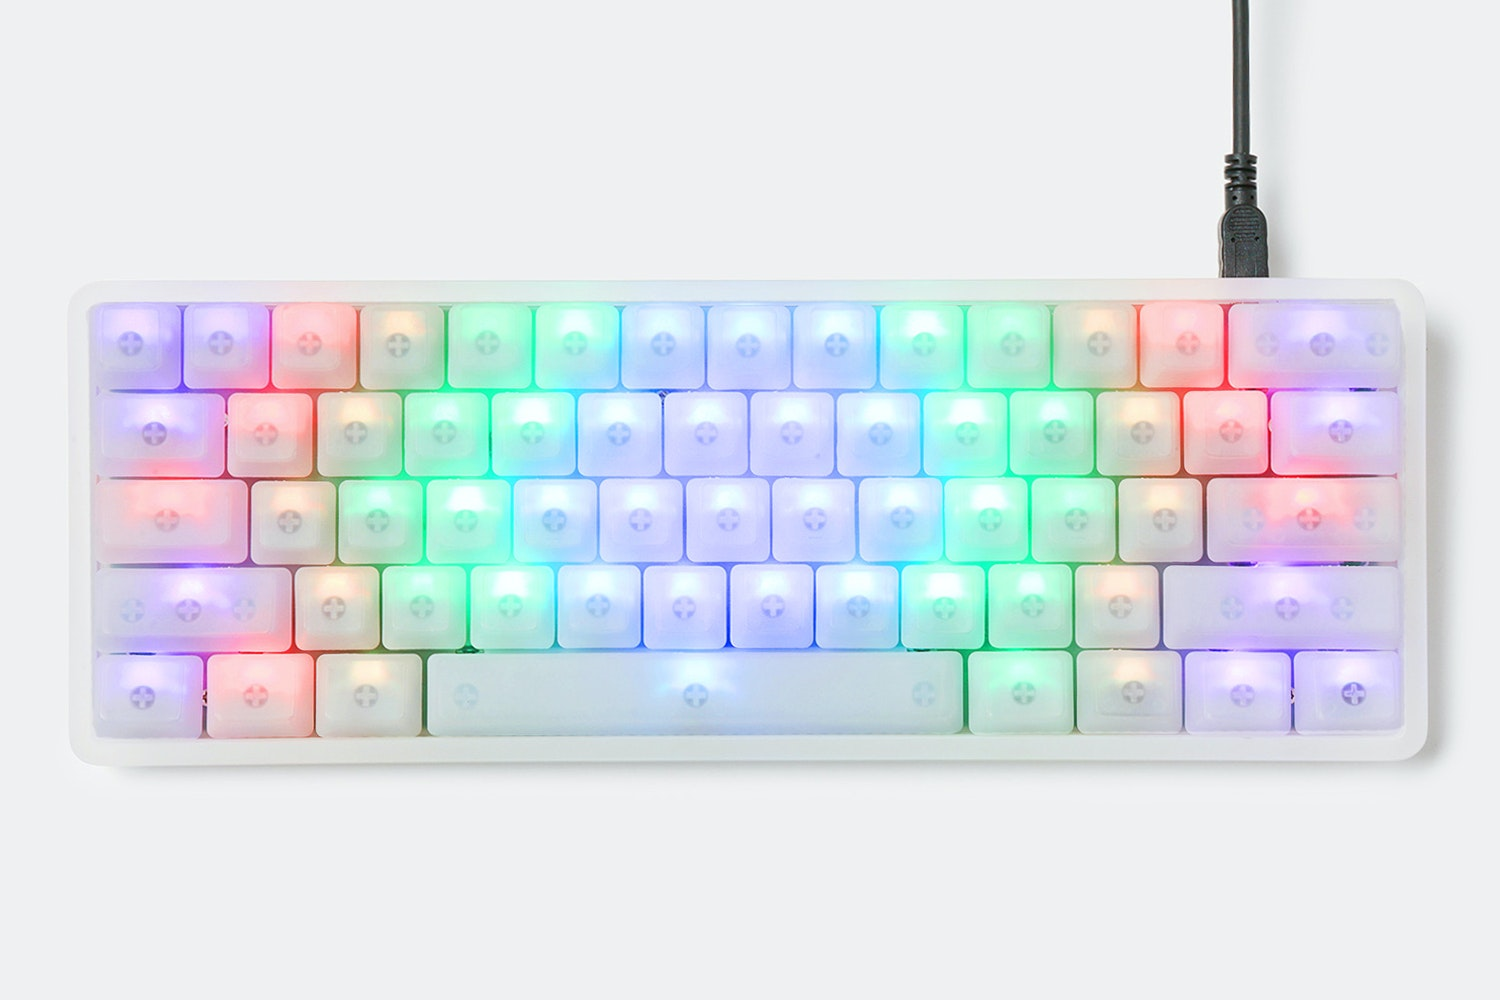 Acrylic - 61 - Blank Backlit keycaps - Frosted Clear Case